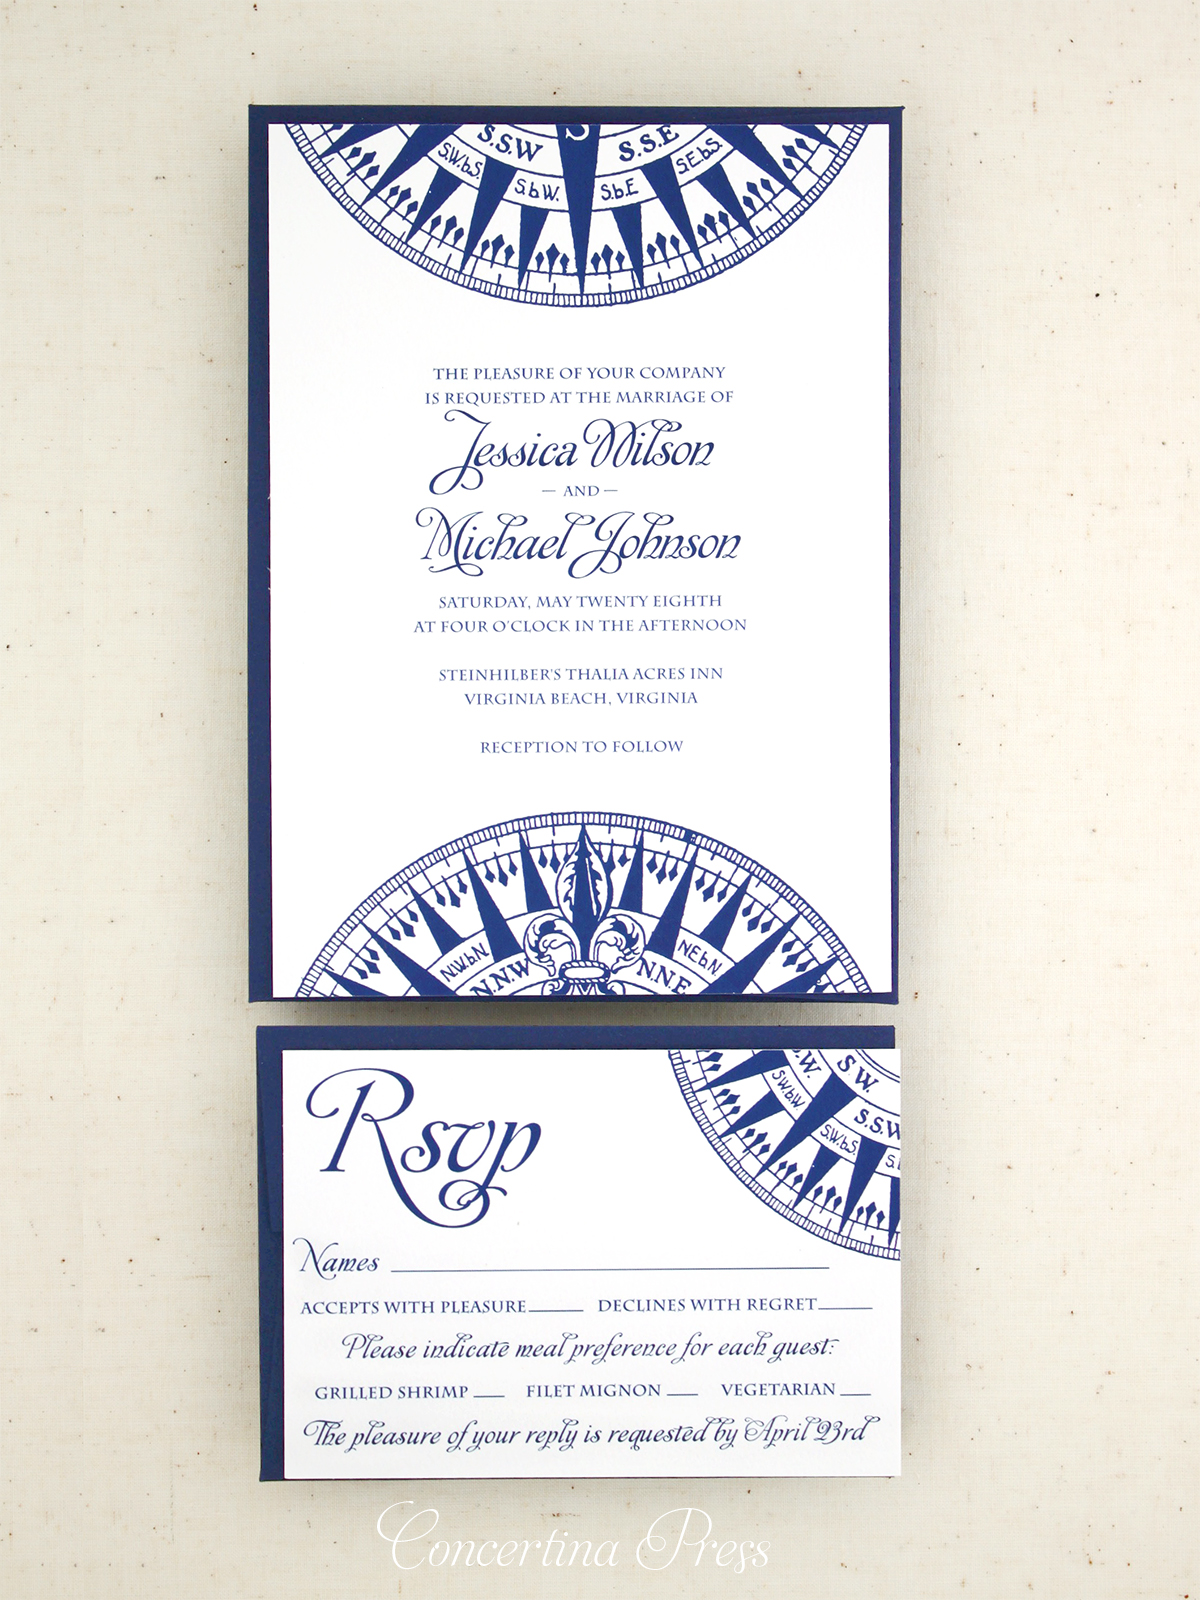 Nautical Compass Wedding Invitations from Concertina Press in Navy Blue and White